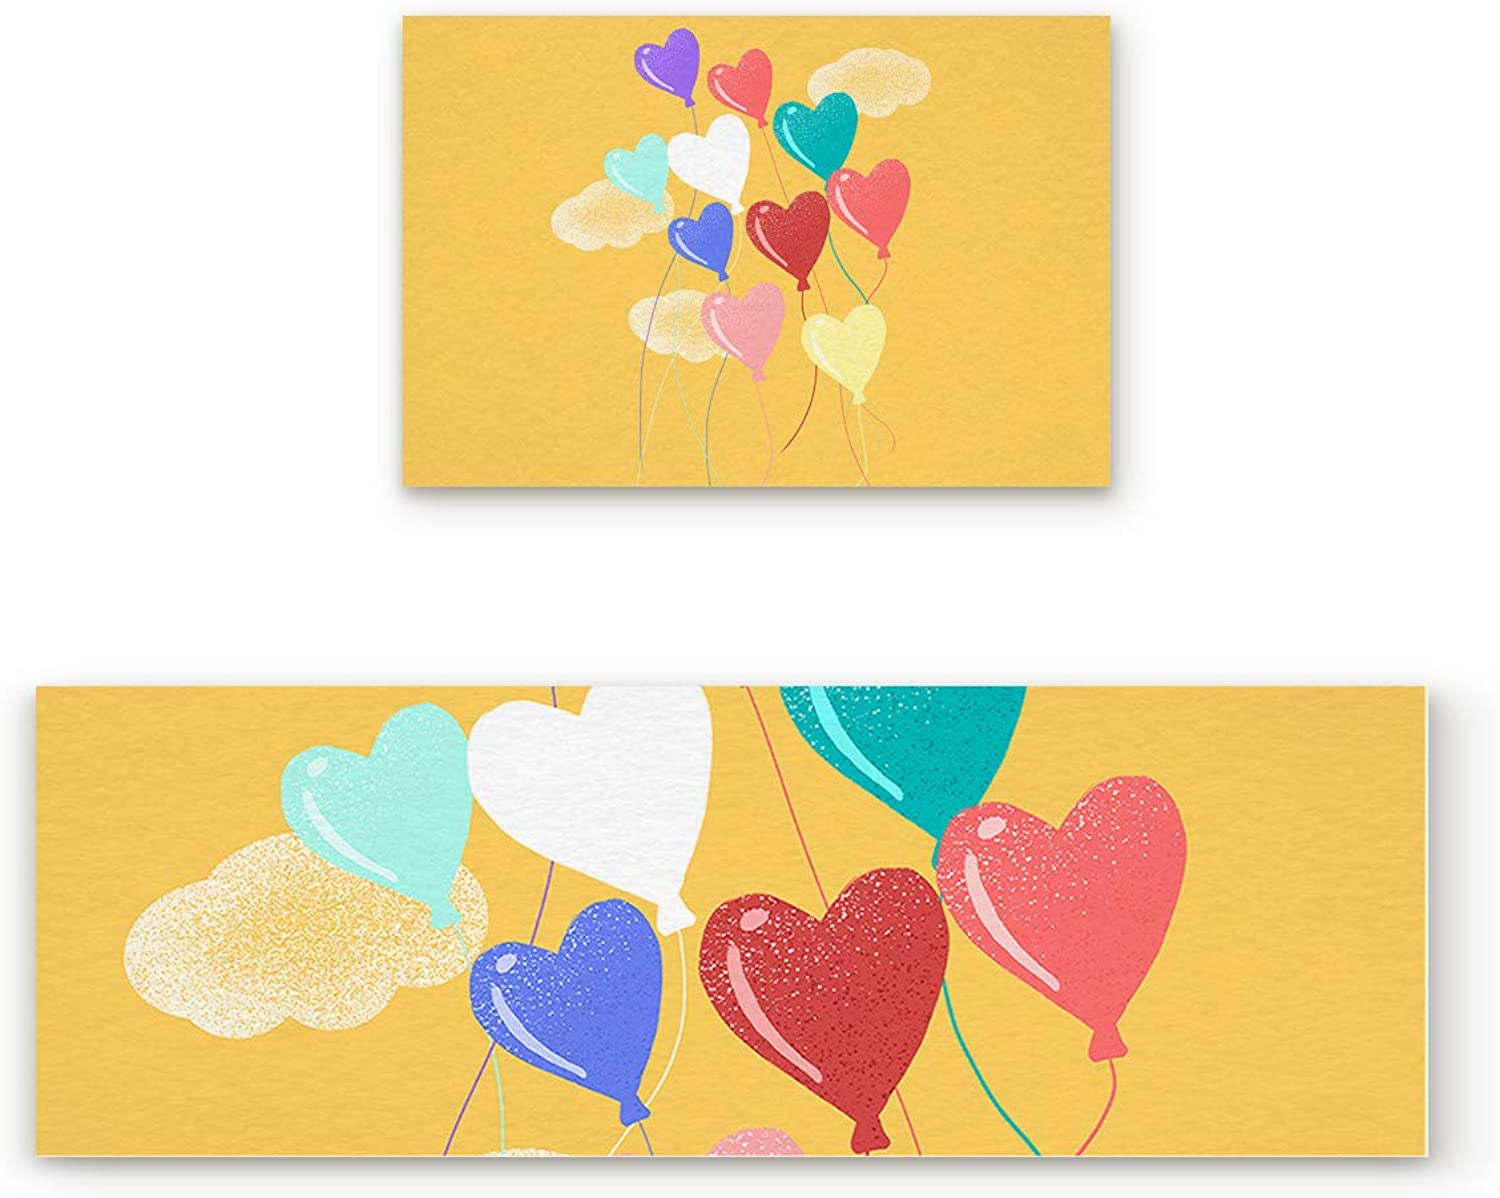 Aomike 2 Piece Non-Slip Kitchen Mat Rubber Backing Doormat colorful Romantic Hearts Balloons Runner Rug Set, Hallway Living Room Balcony Bathroom Carpet Sets (19.7  x 31.5 +19.7  x 47.2 )